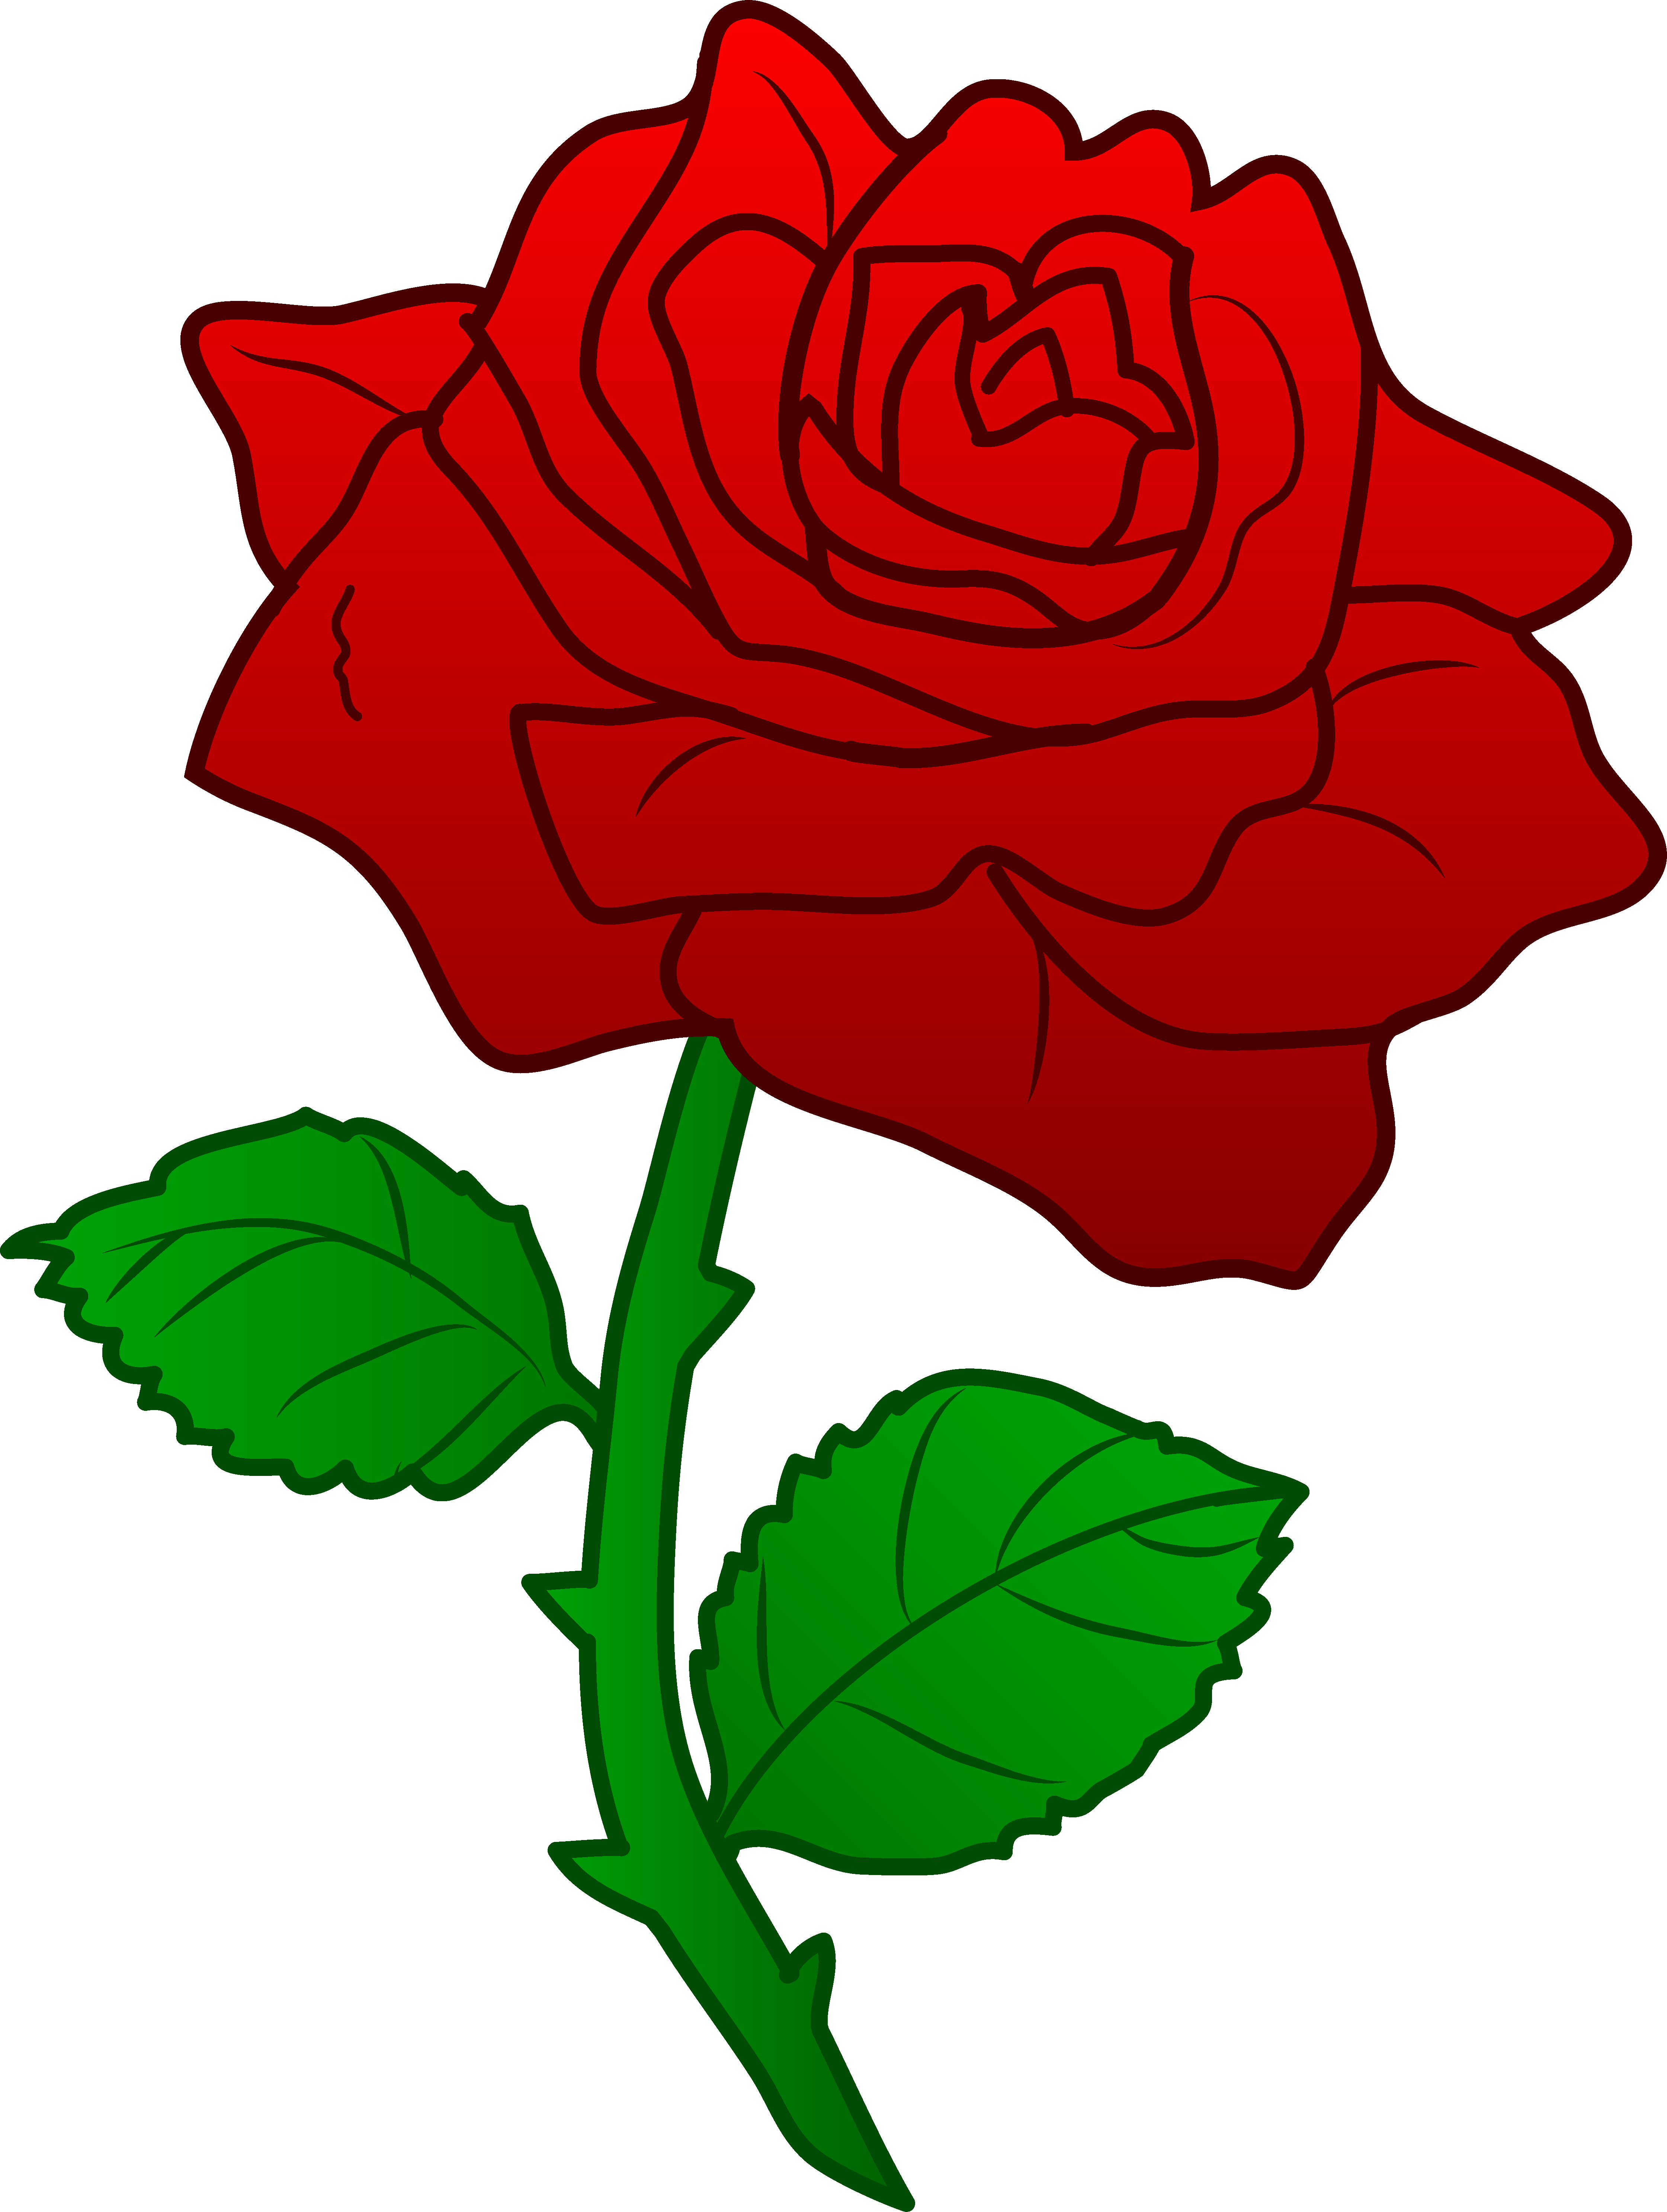 Large Red Roses Png Clipart With Images Red Roses Single Red Rose Rose Clipart